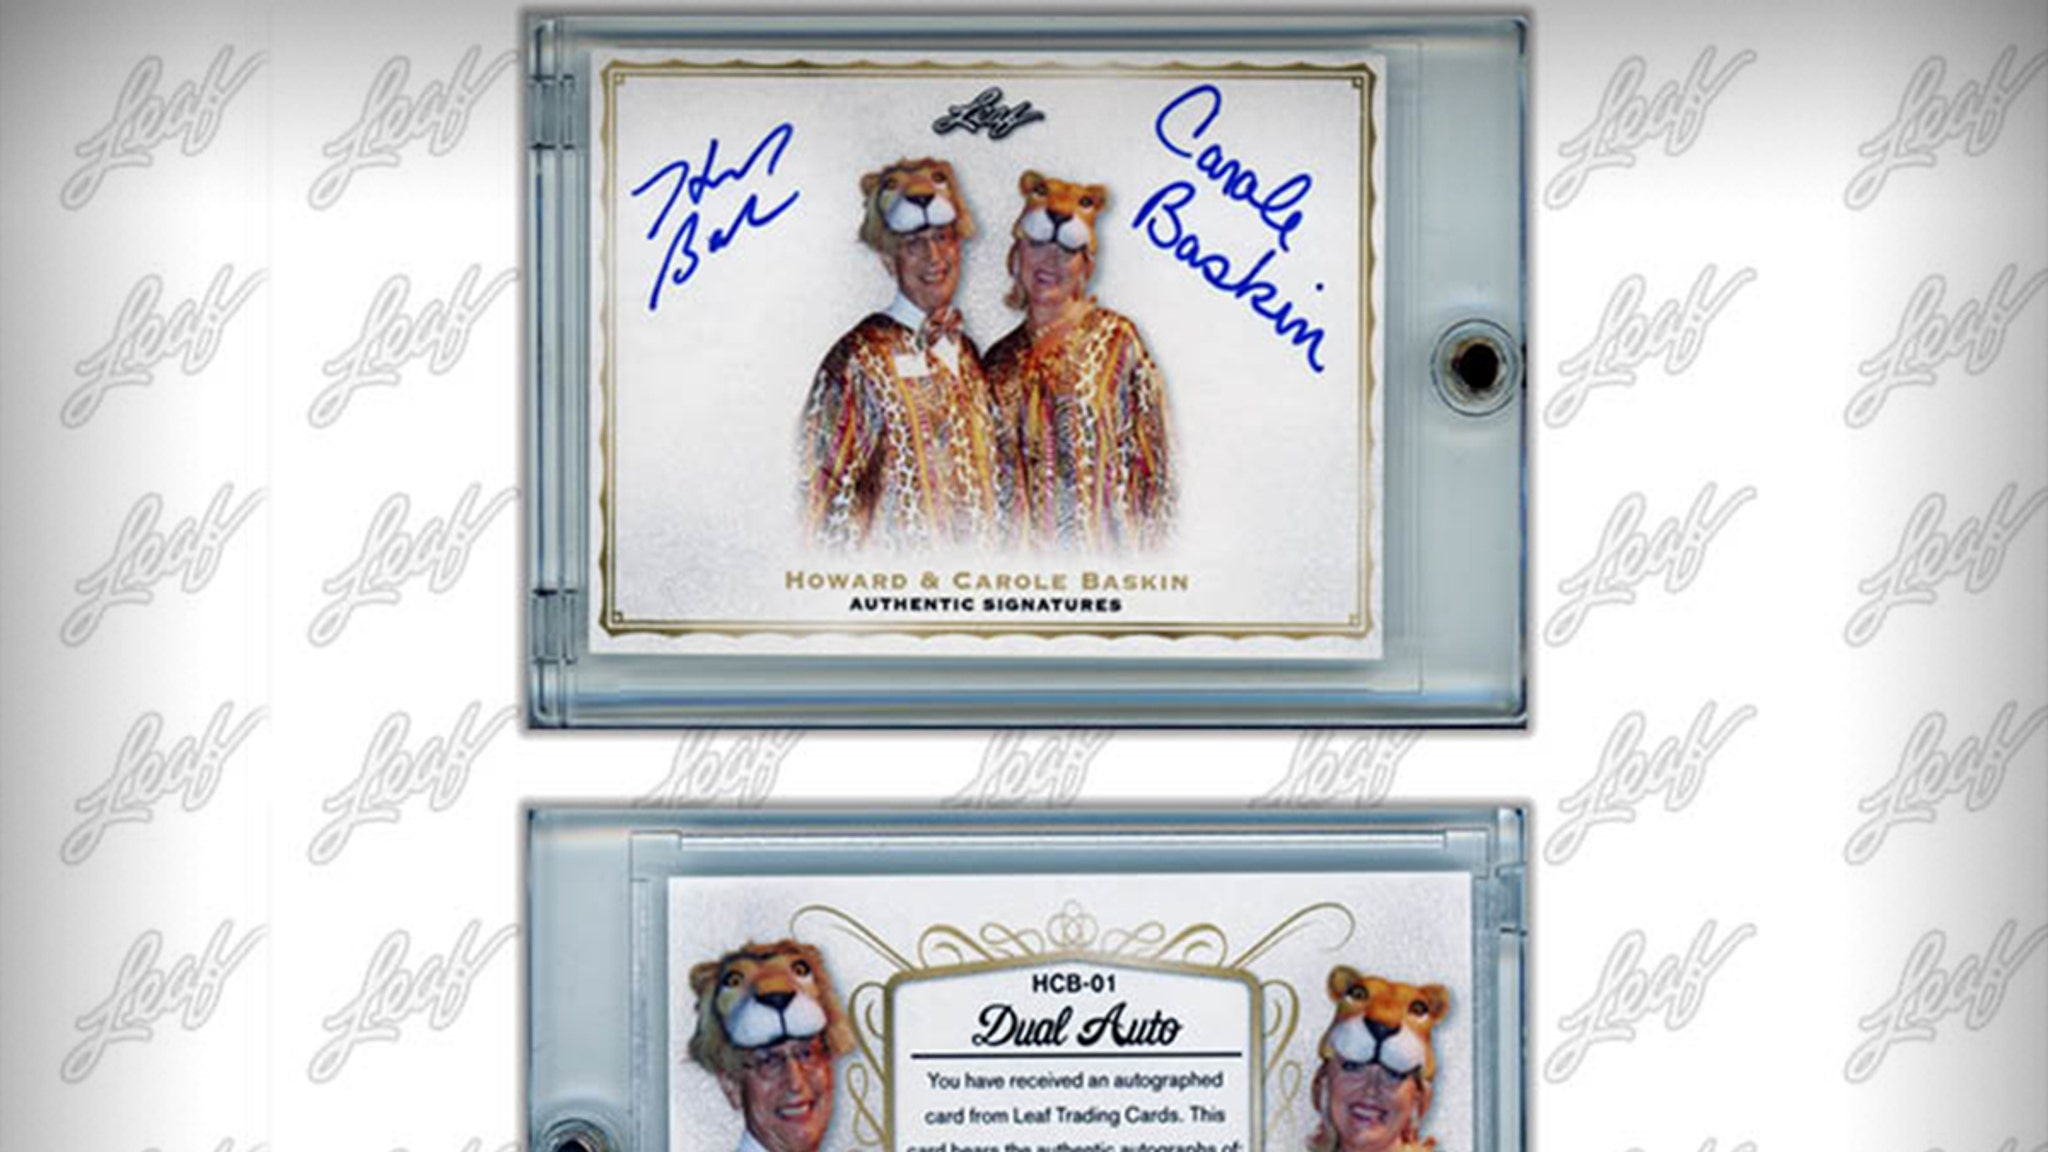 Carole & Howard Baskin Signed Trading Cards Sell Out ... In 24 Minutes!!!